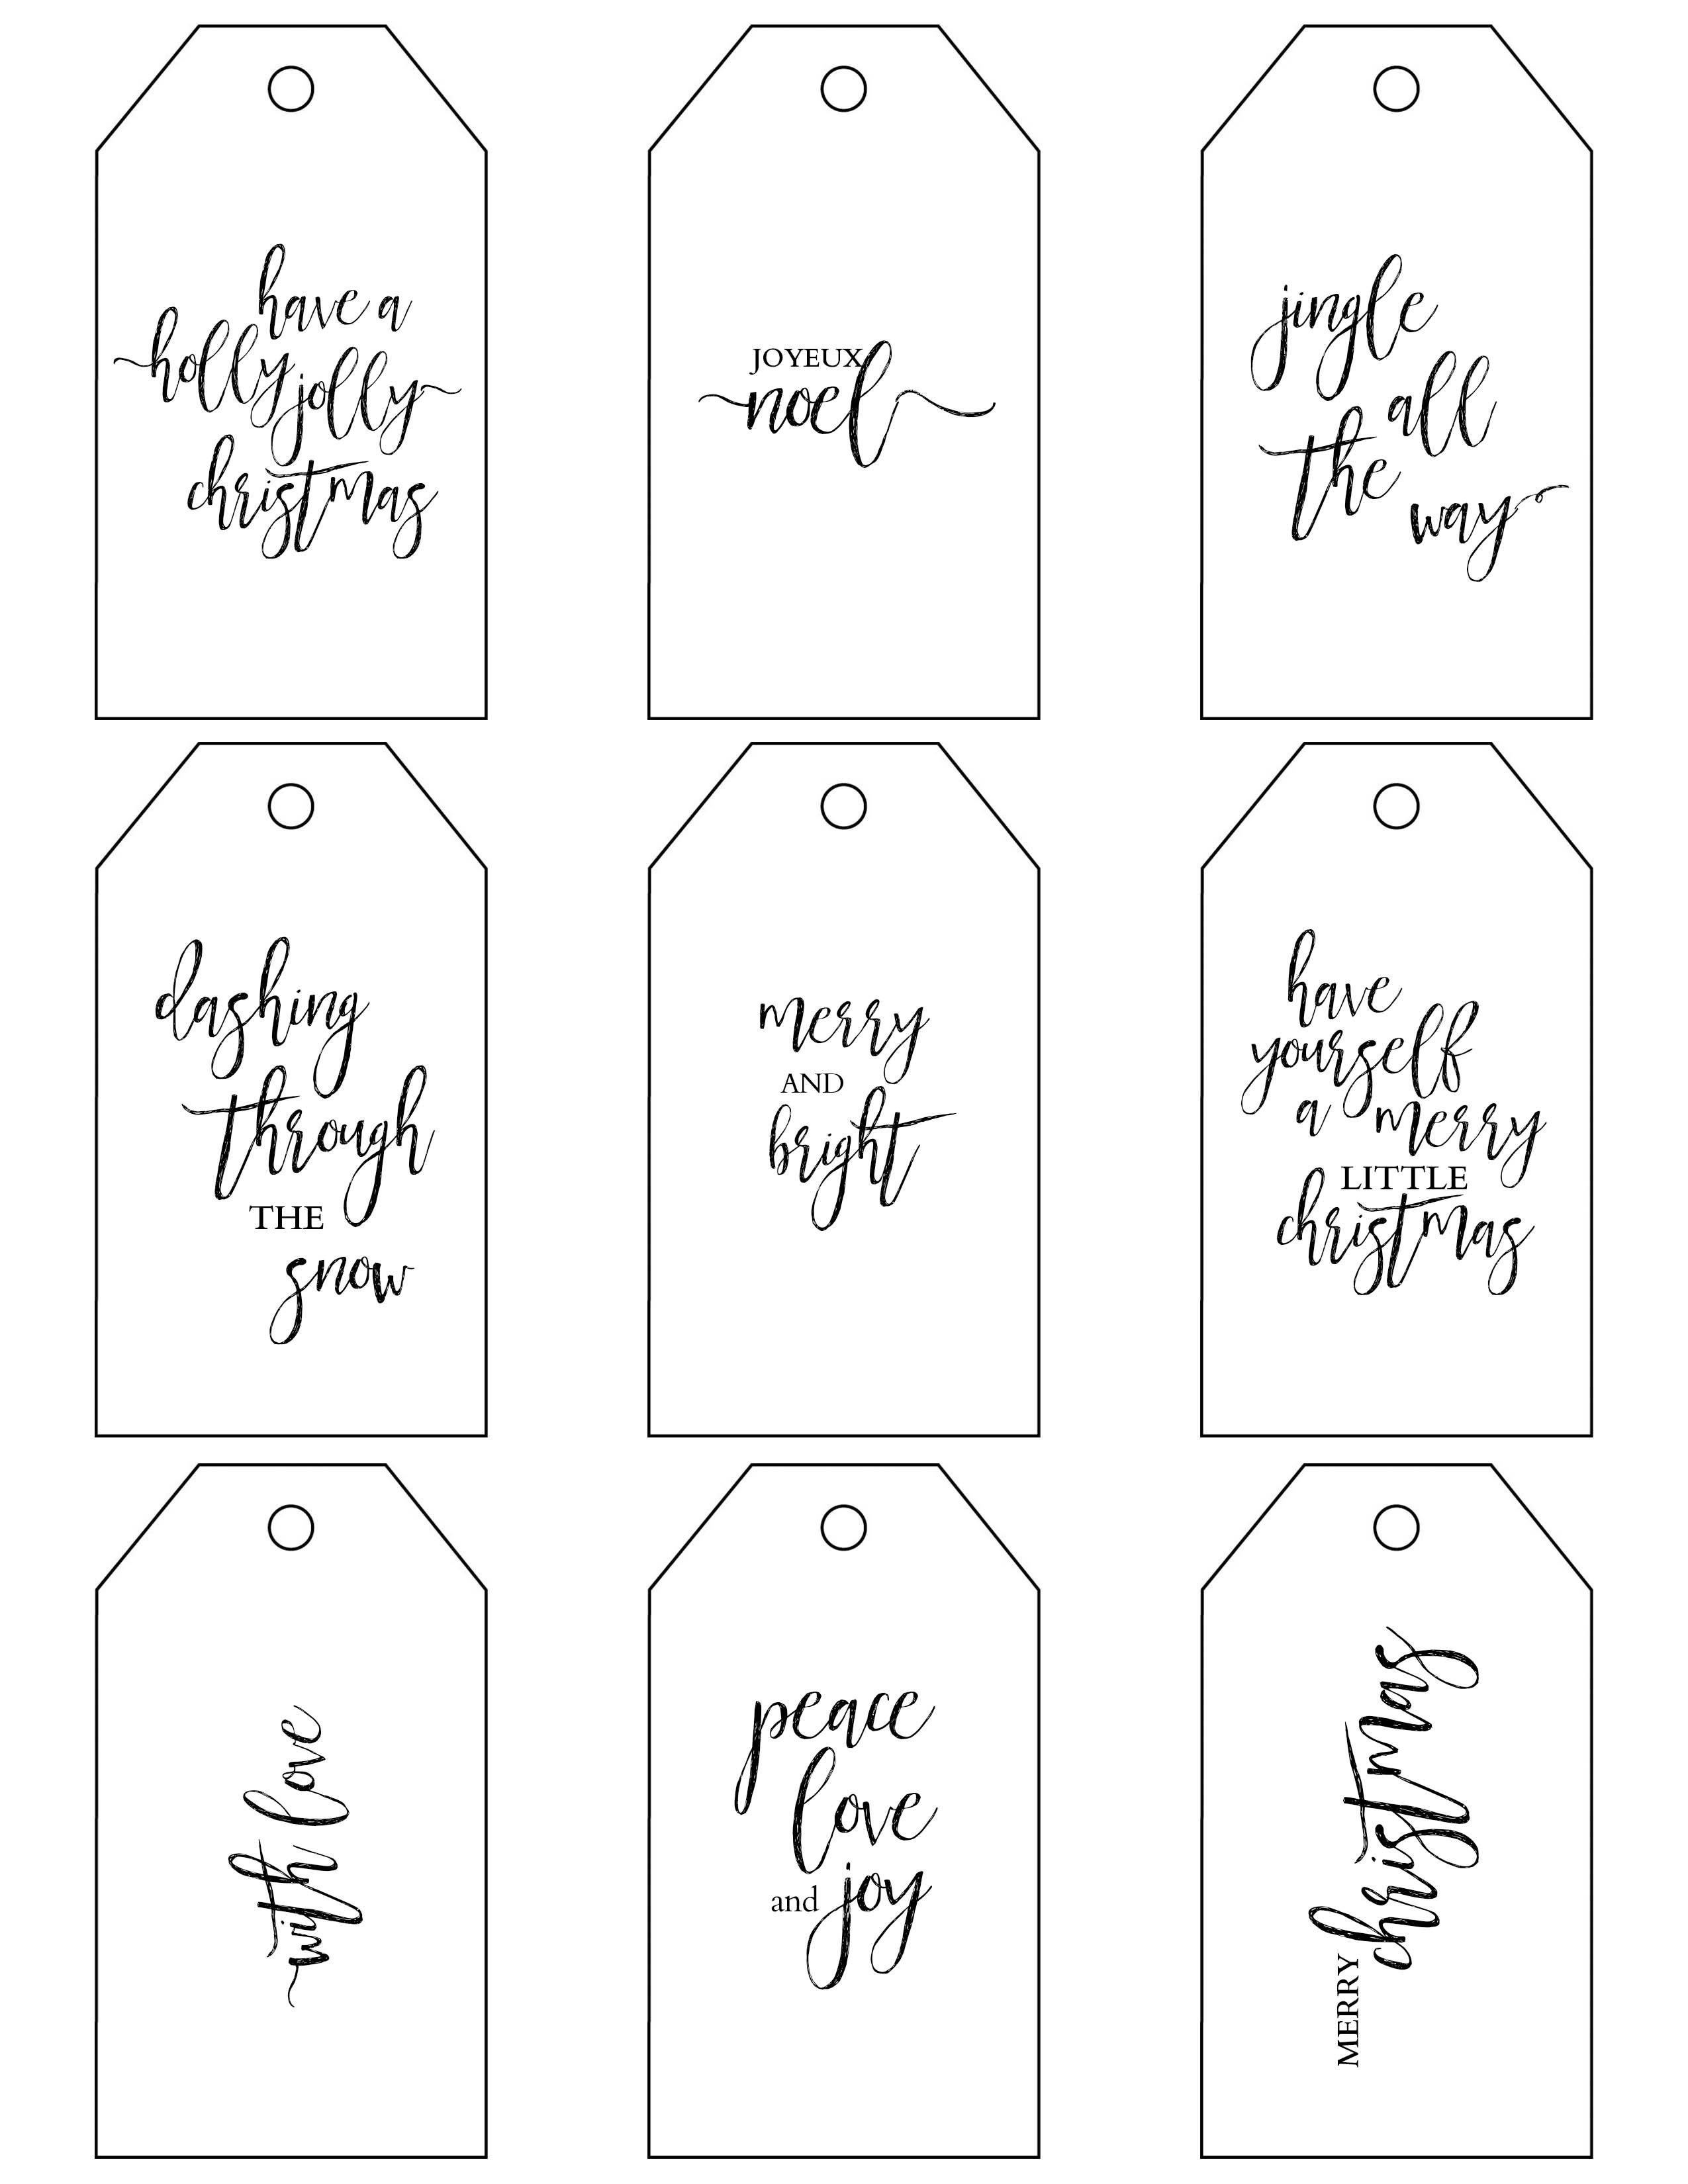 Printable Christmas Gift Tags Make Holiday Wrapping Simple - Christmas Gift Tags Free Printable Black And White